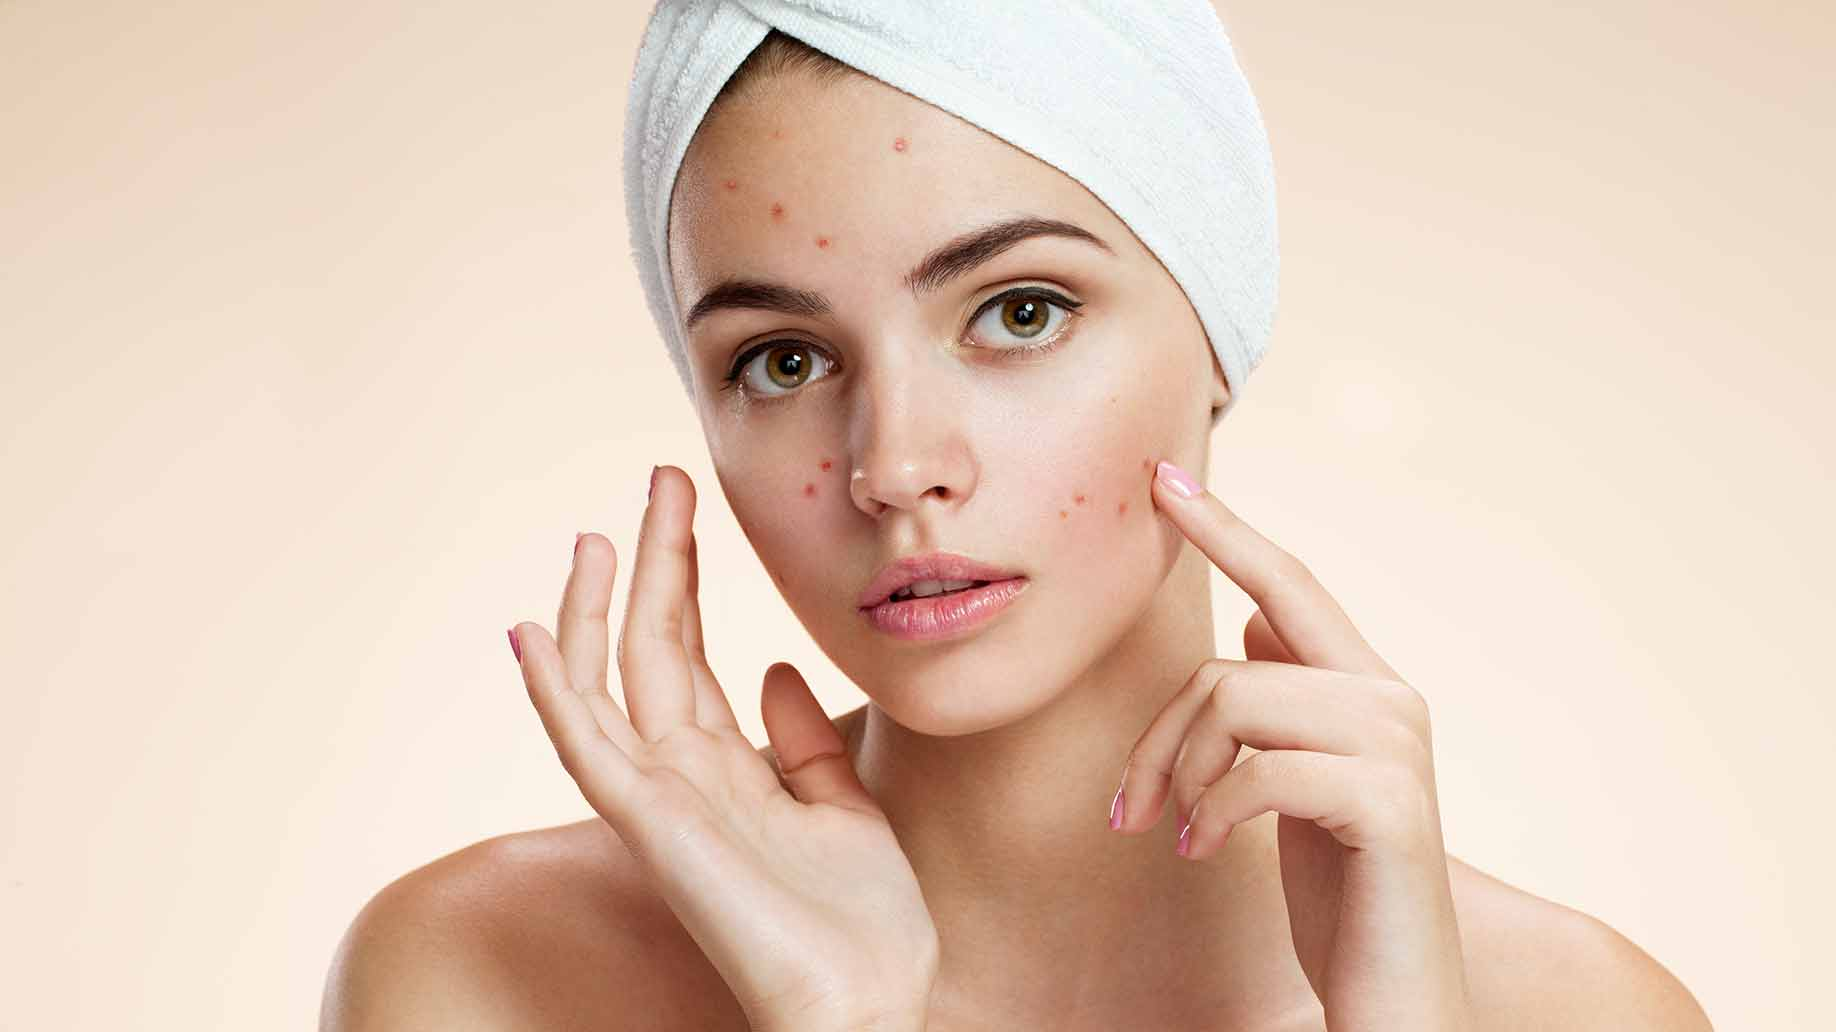 WHAT'S CAUSING YOUR ACNE?